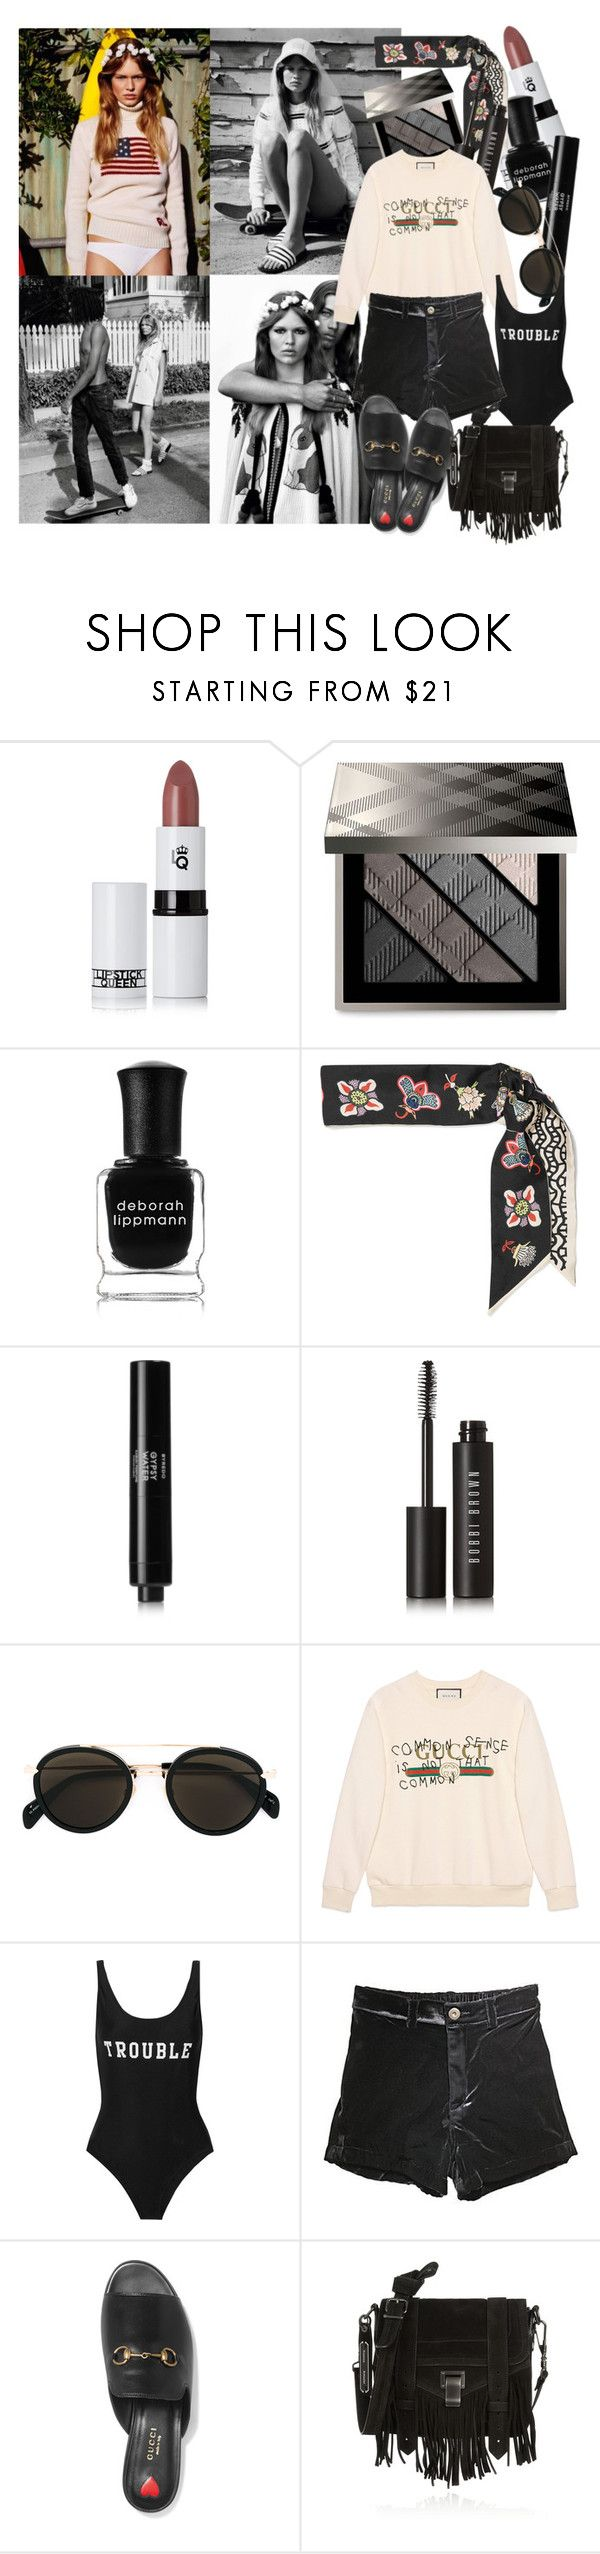 """""""They're gonna watch me disappear into the sun"""" by brownish ❤ liked on Polyvore featuring Alasdair, Lipstick Queen, Burberry, Deborah Lippmann, Valentino, Byredo, Bobbi Brown Cosmetics, CÉLINE, Gucci and ADRIANA DEGREAS"""